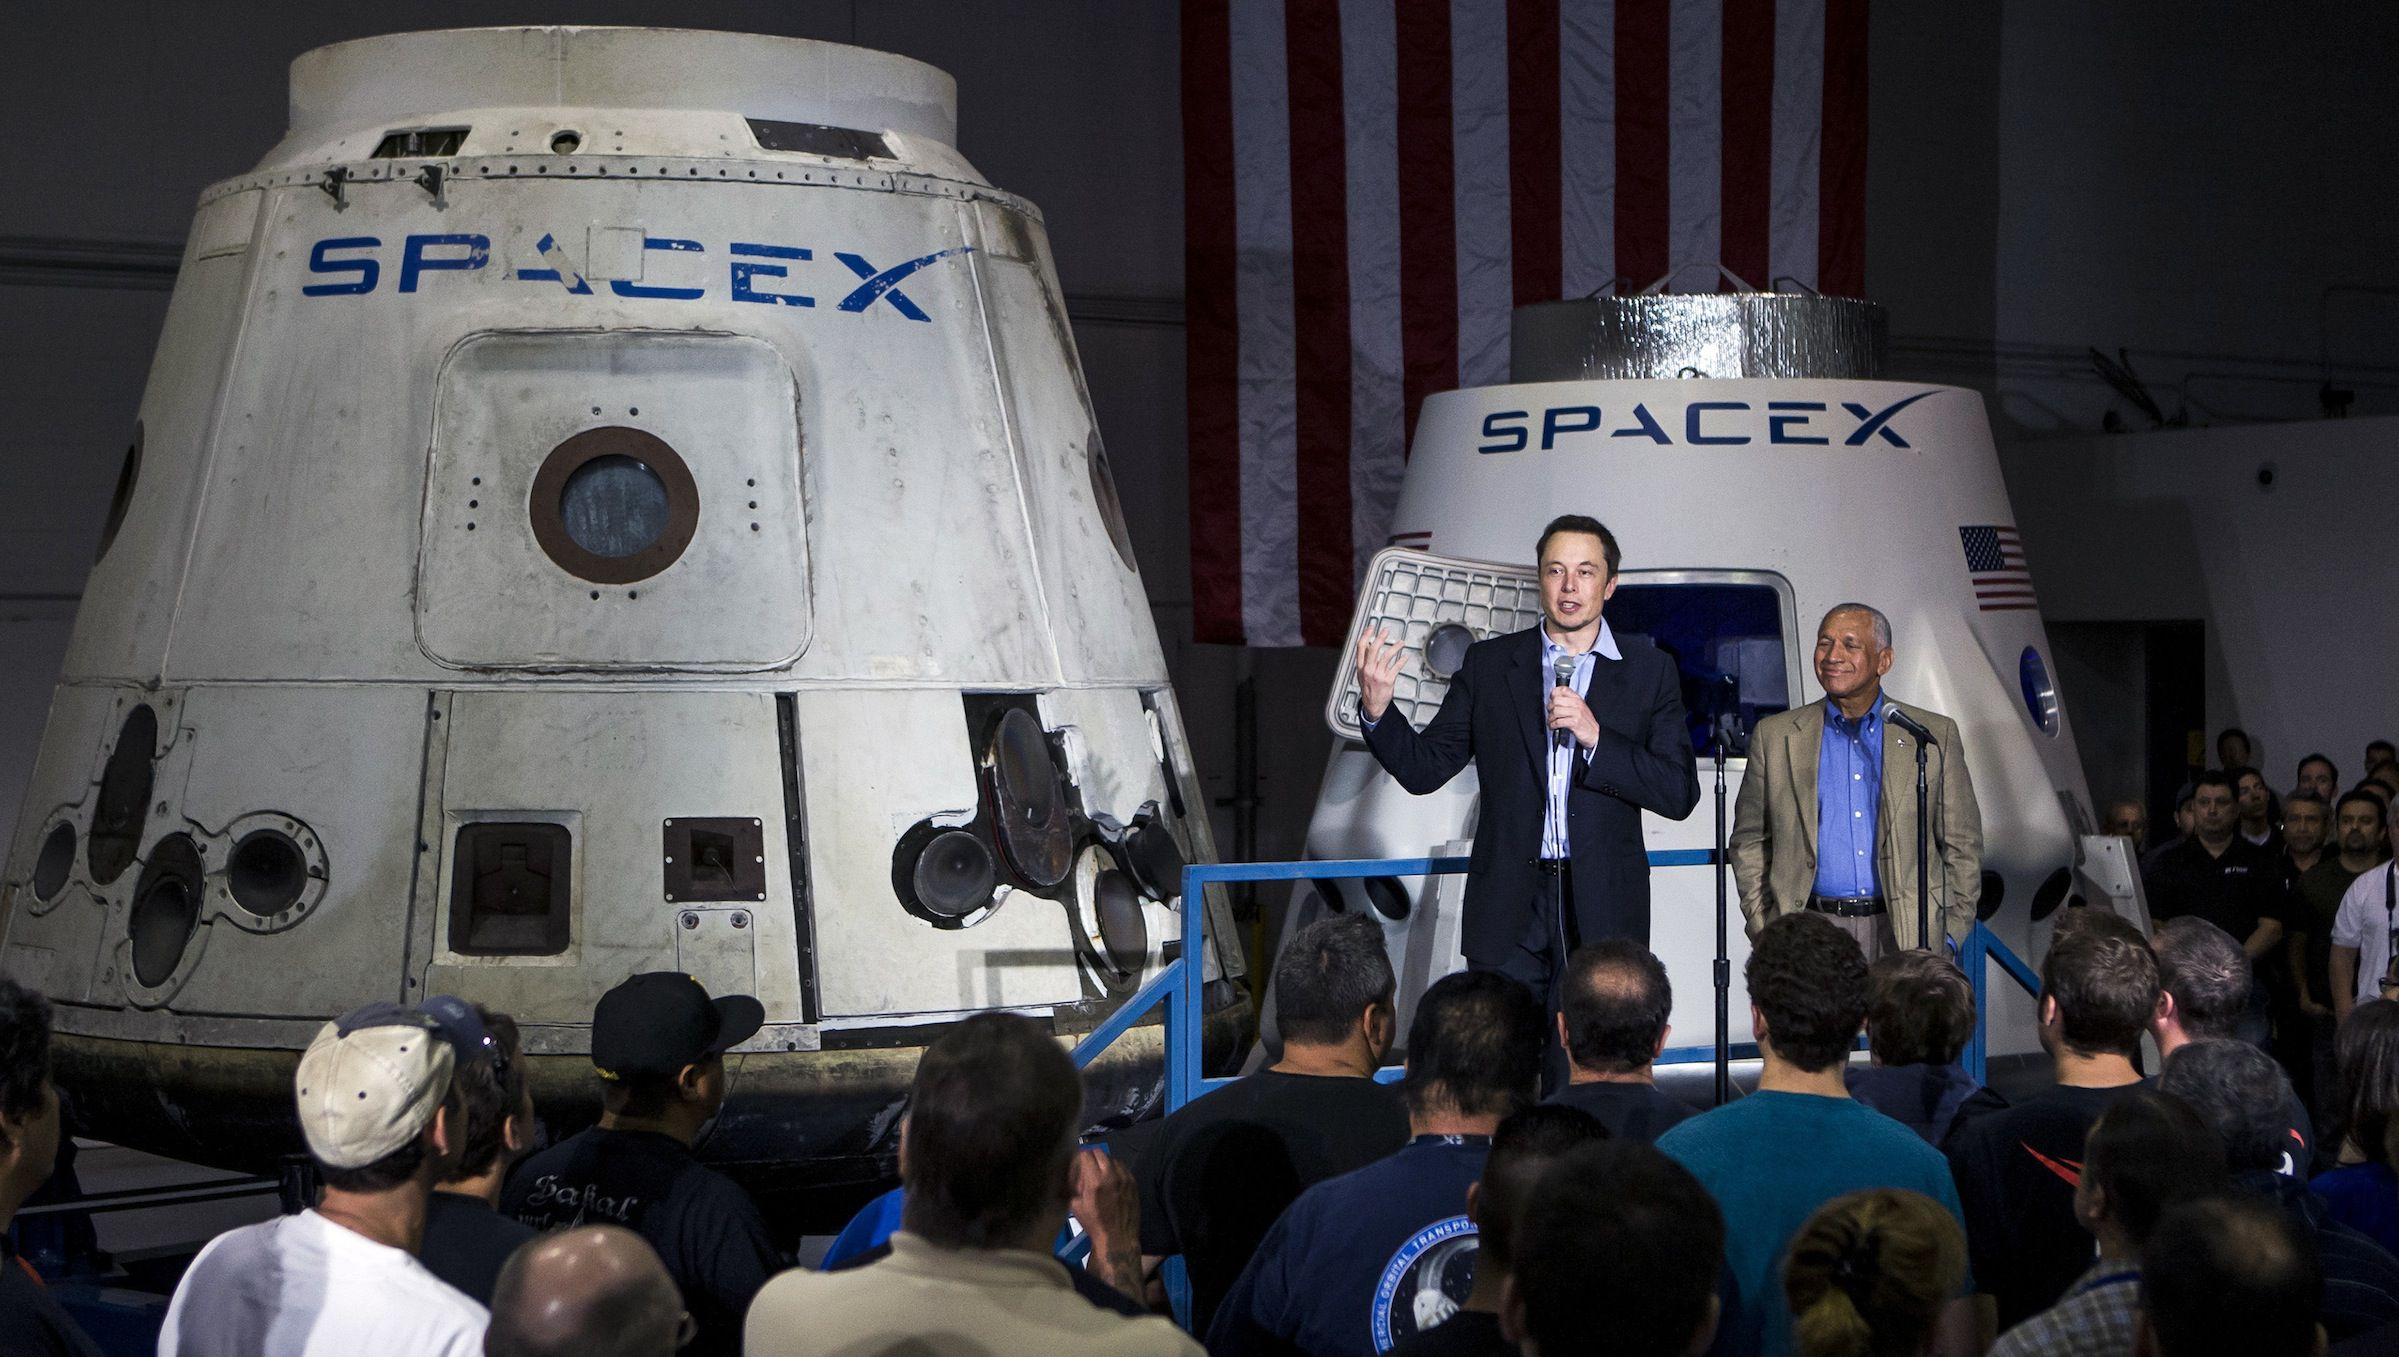 Elon Musk and a NASA exec talk about space exploration in front of a space capsule.